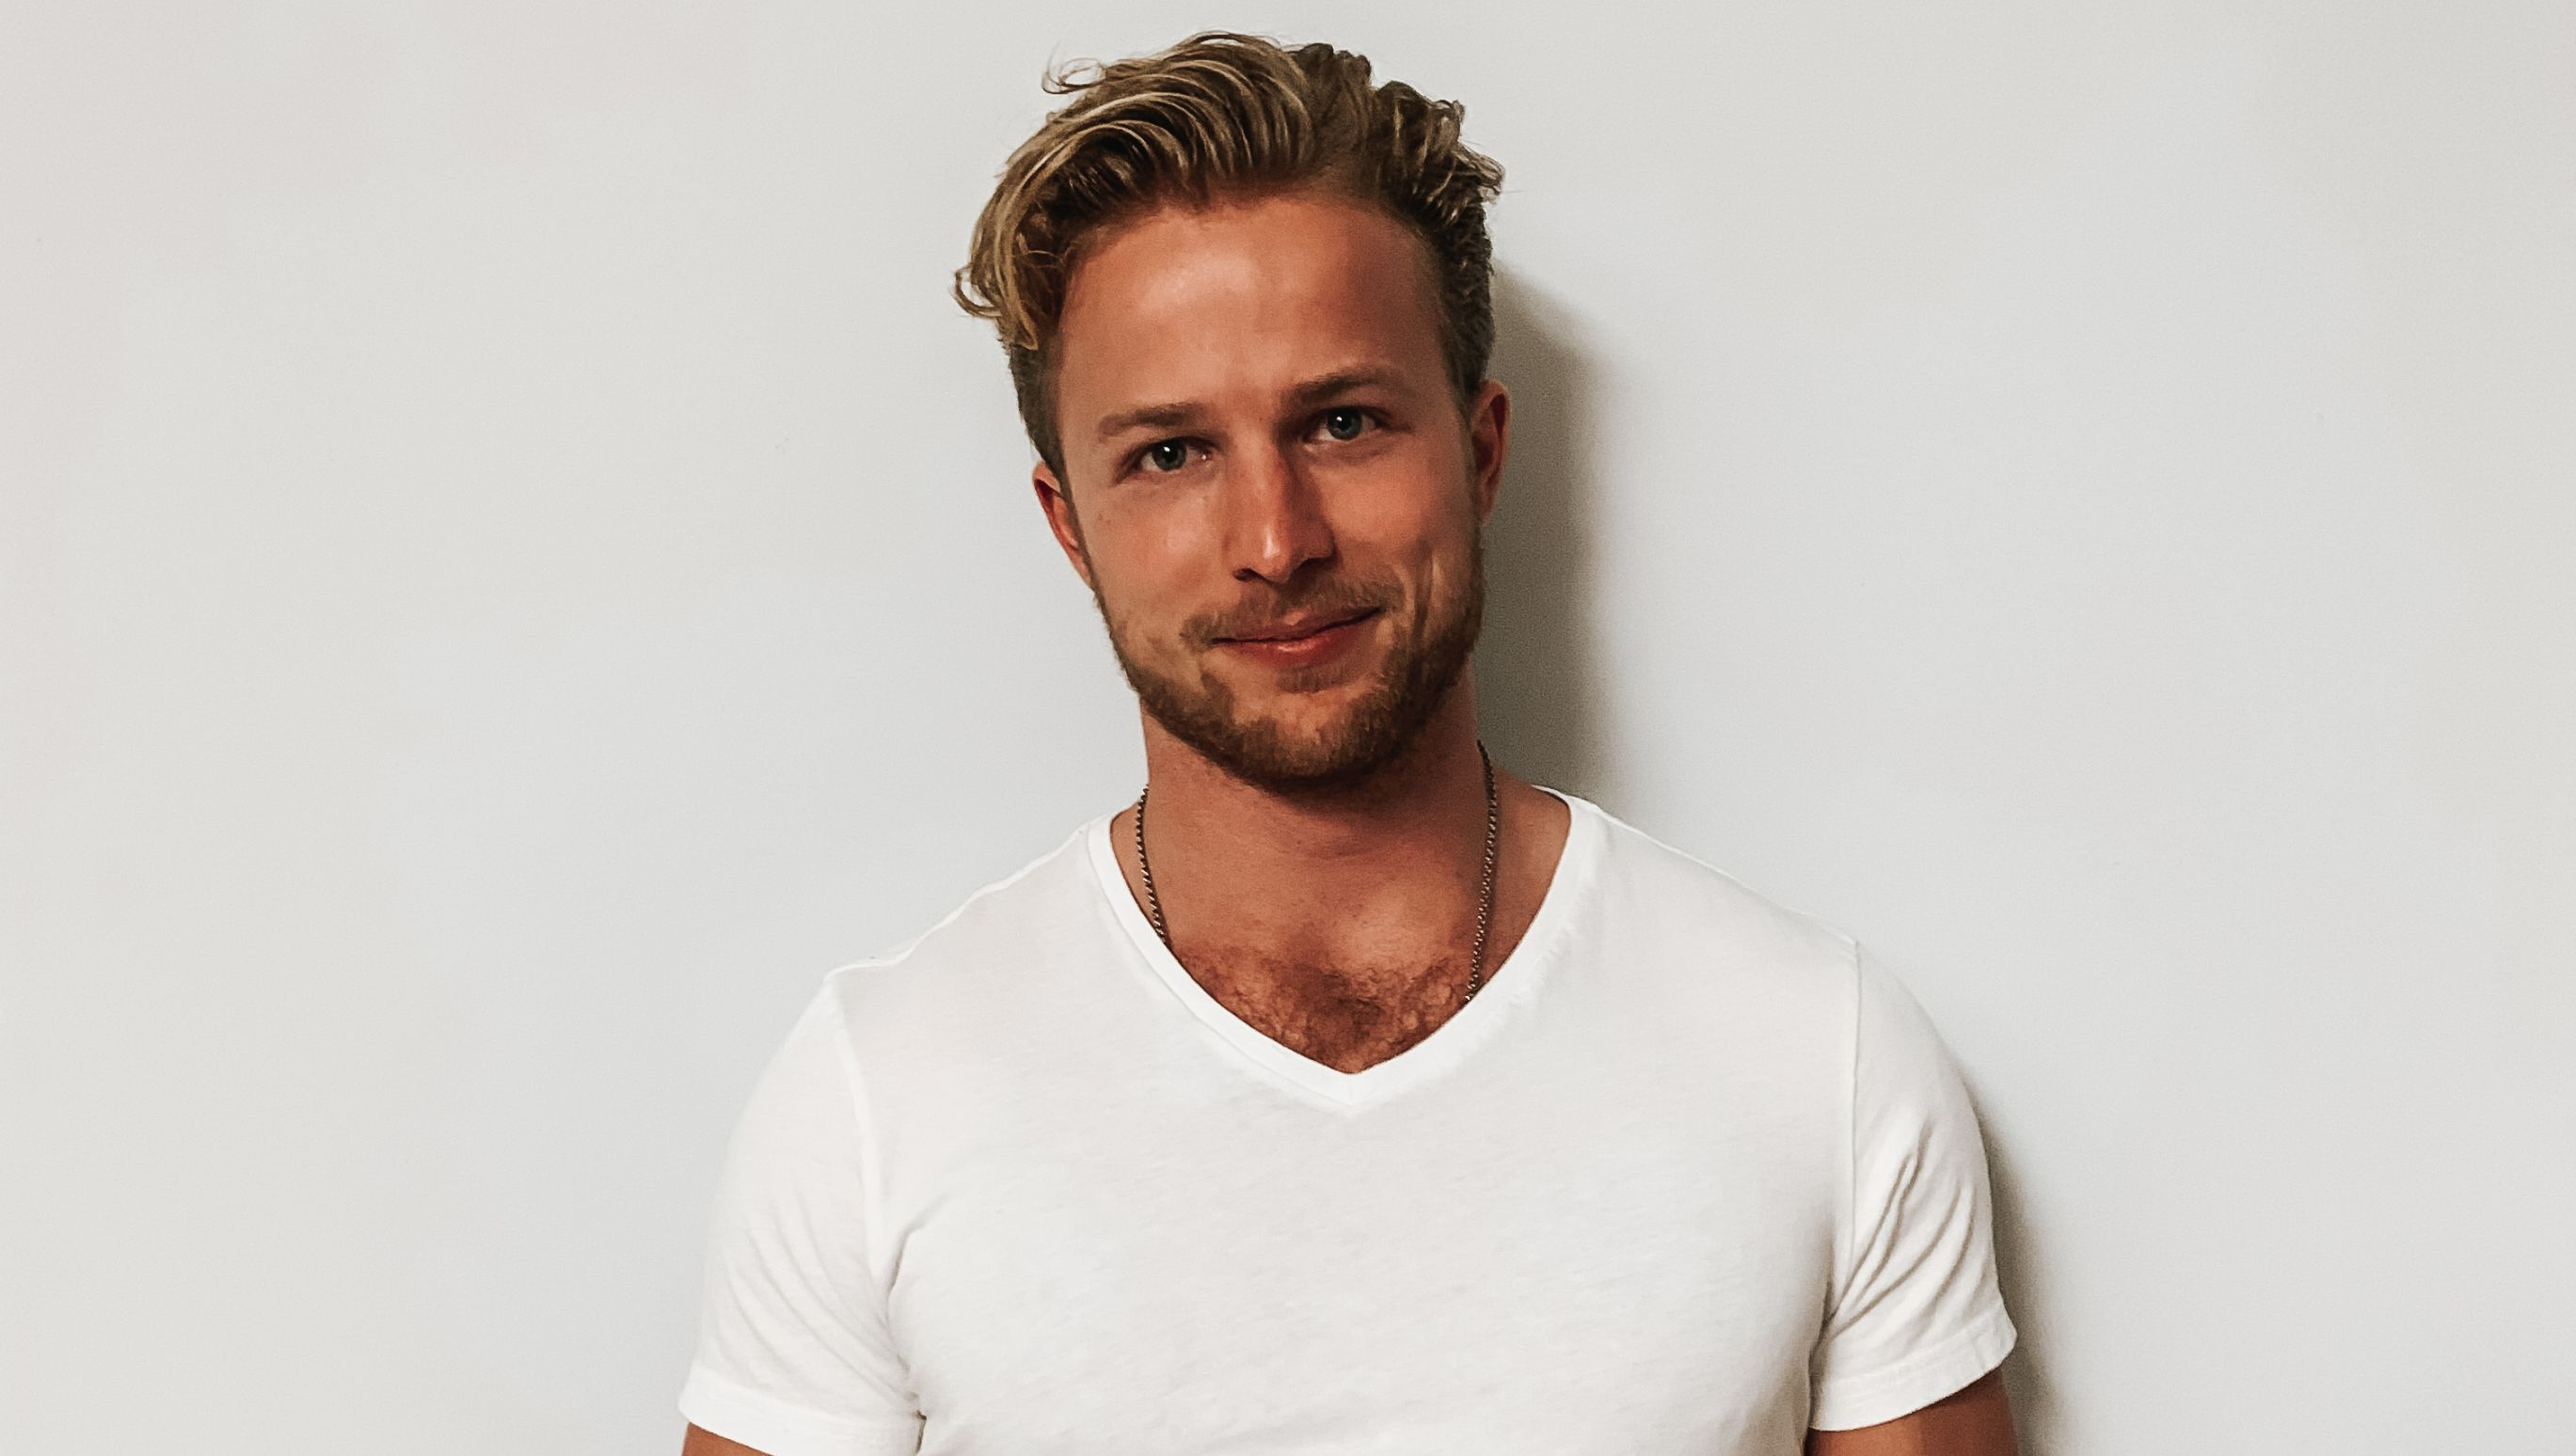 Man with white t shirt